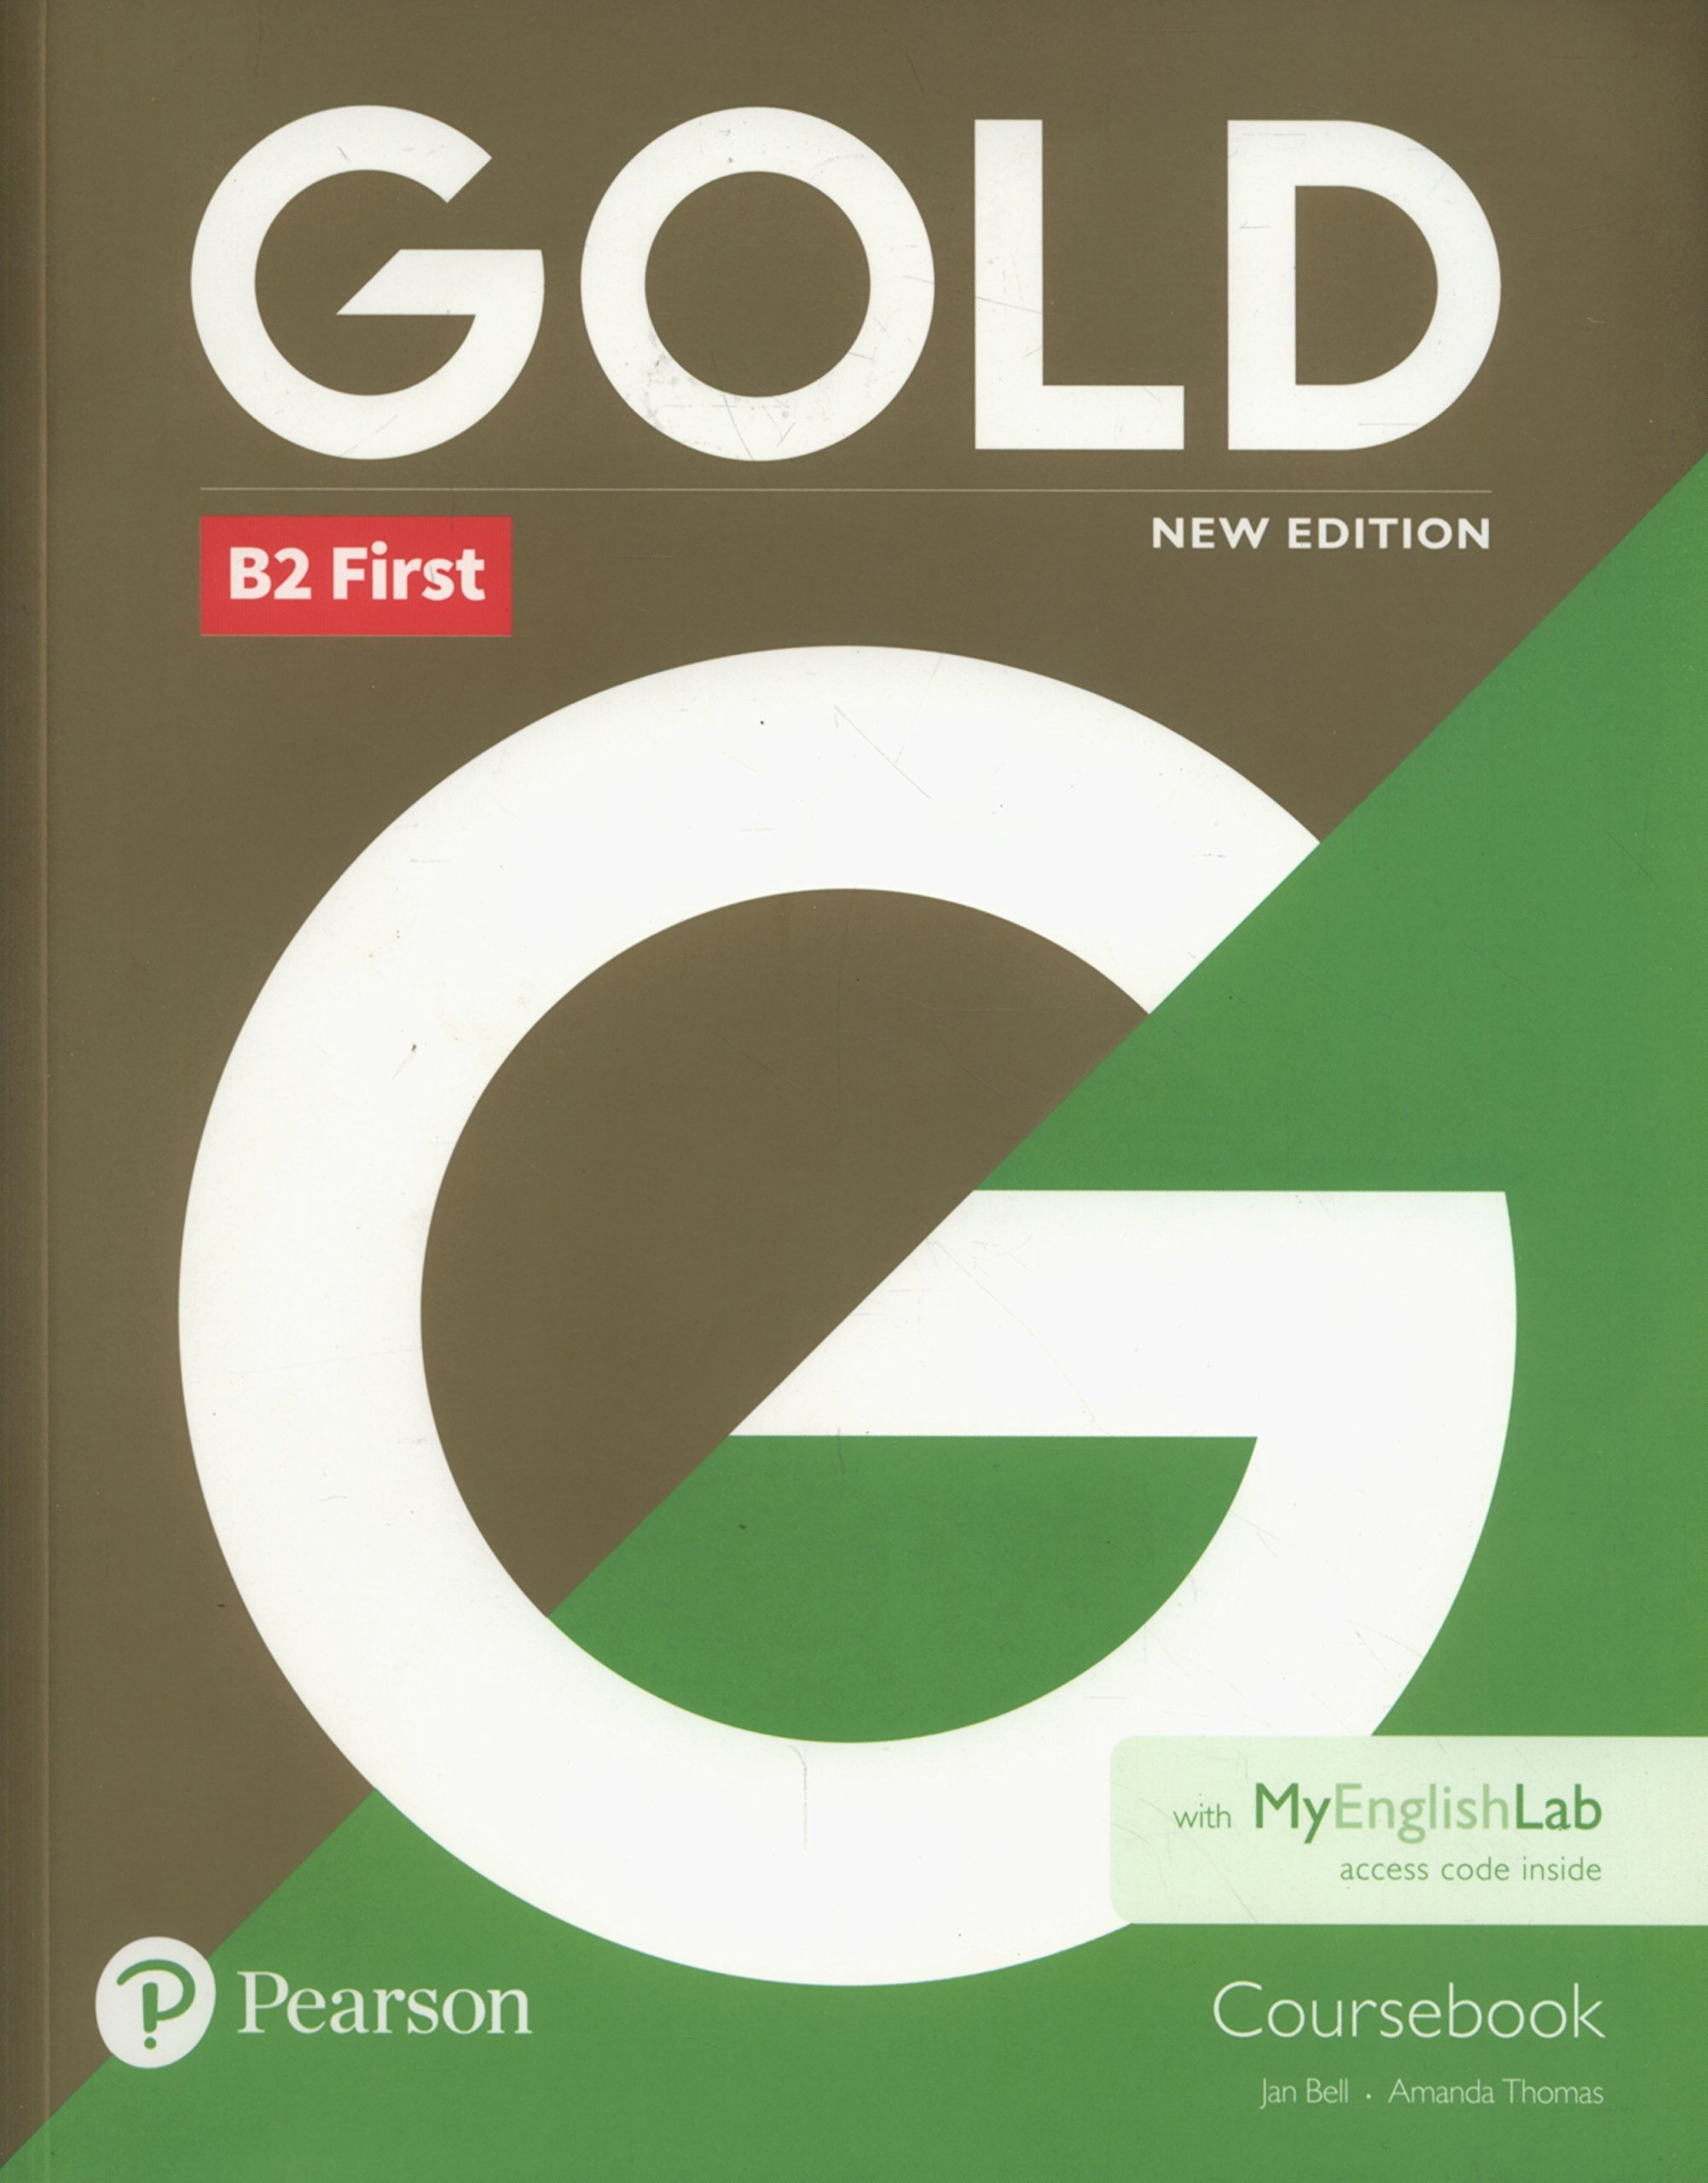 Gold First New Edition Coursebook and MyEnglishLab pack: Amazon.es ...